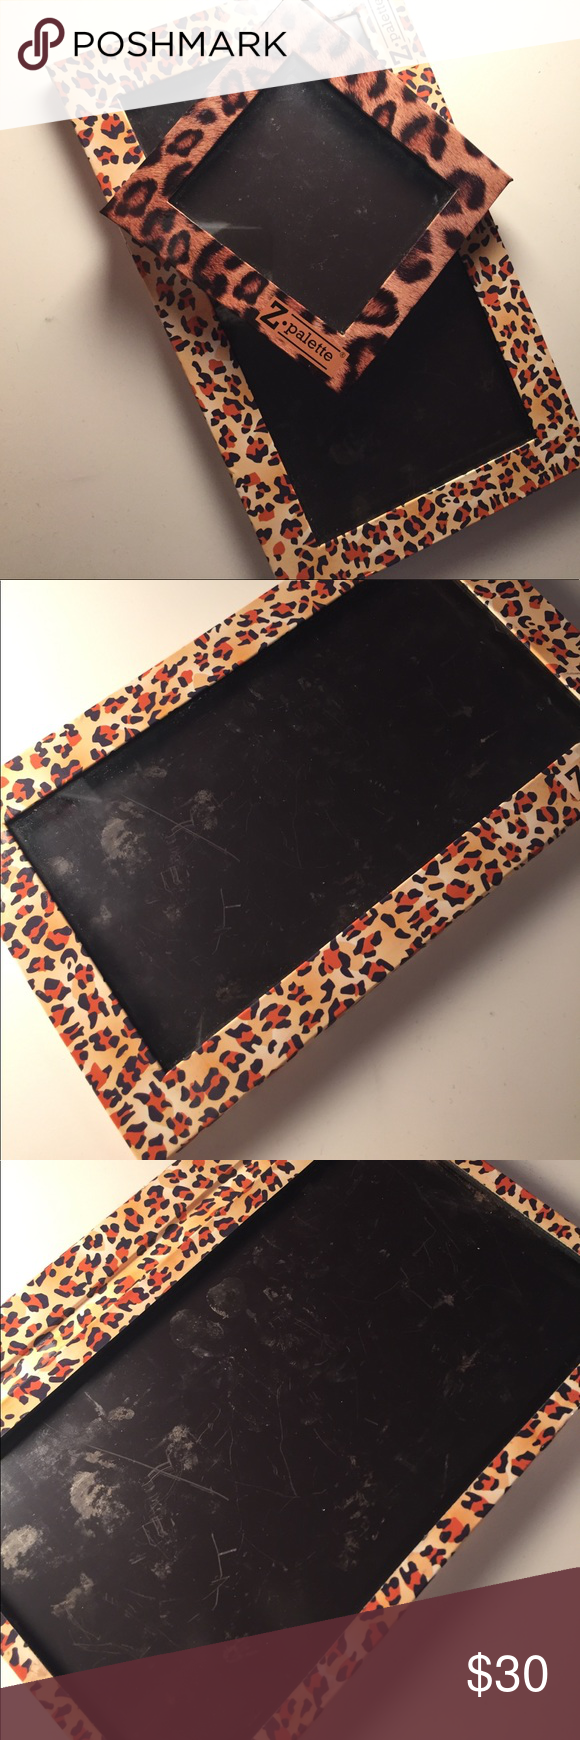 Z Palette Leopard Duo (Small and Large) Z palette